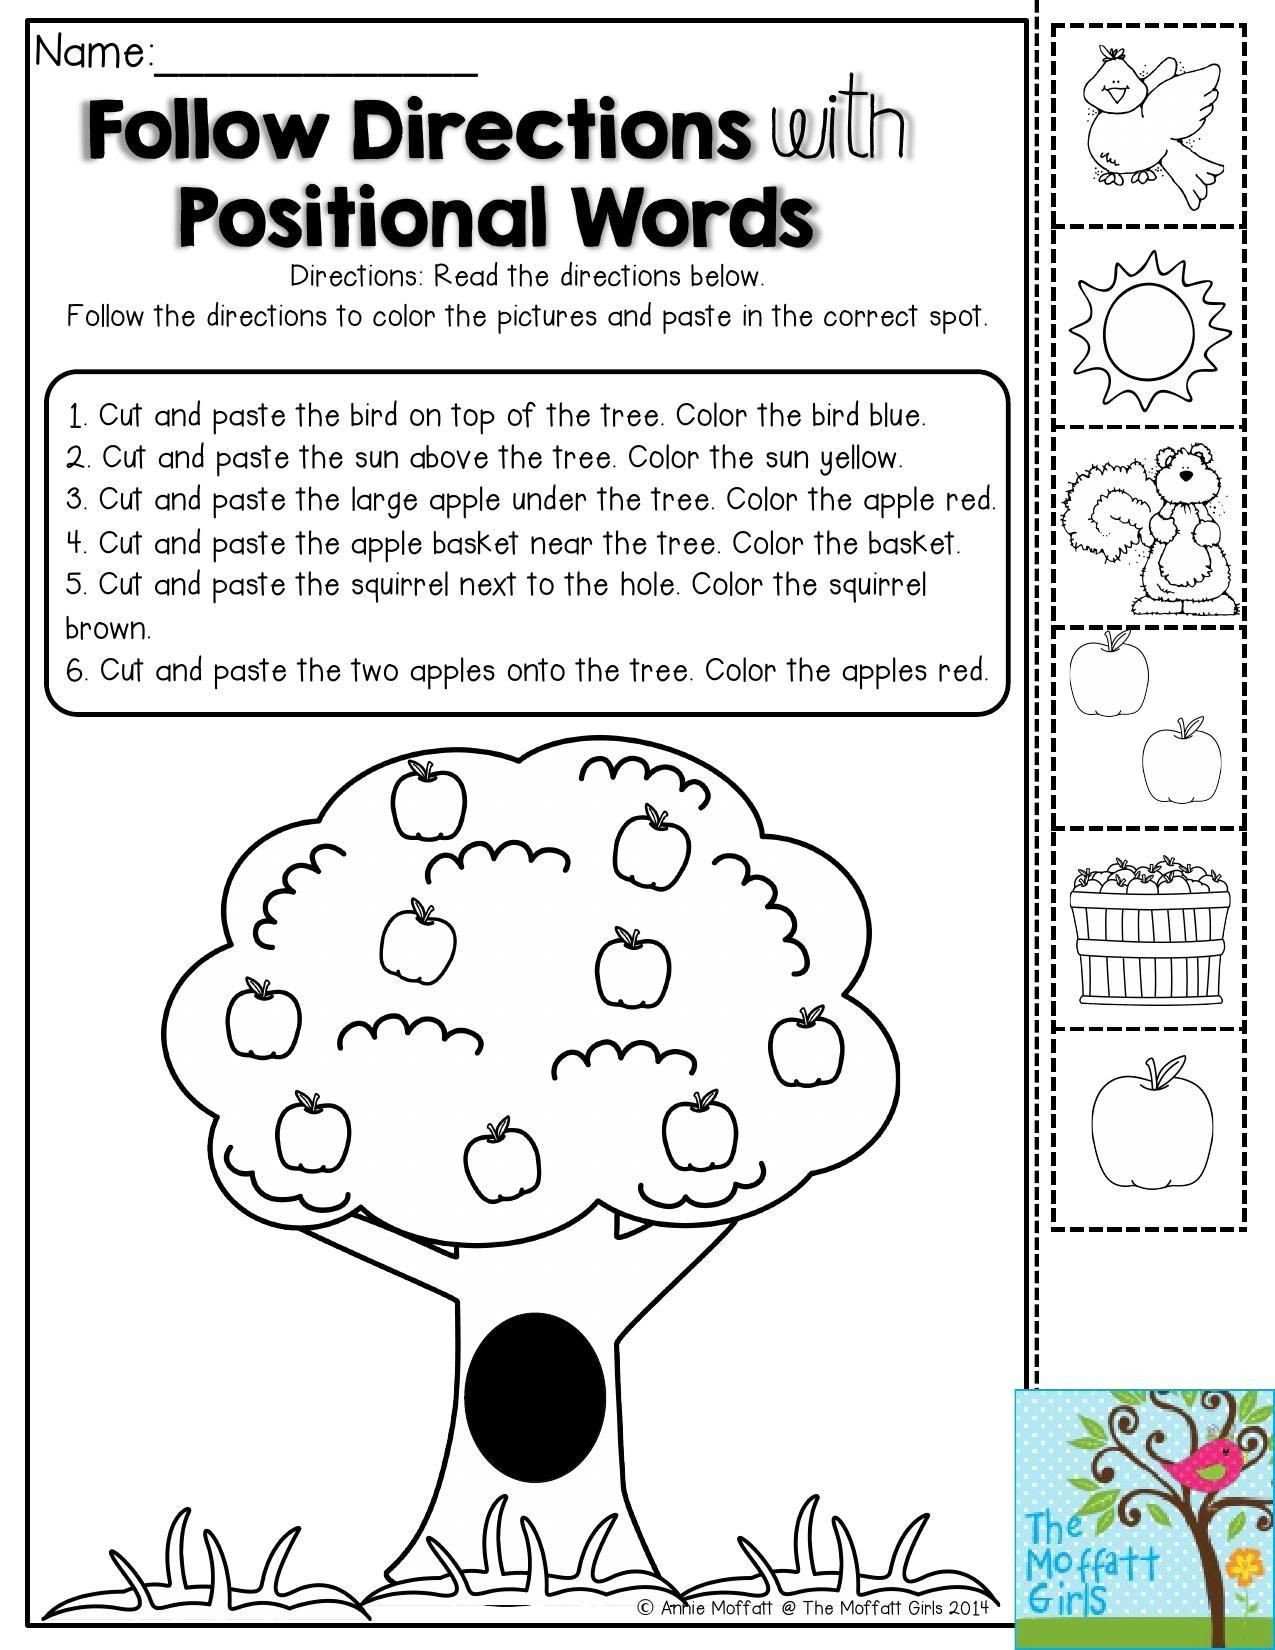 Follow Directions Worksheet Kindergarten Follow Directions Worksheet Kindergarten In 2020